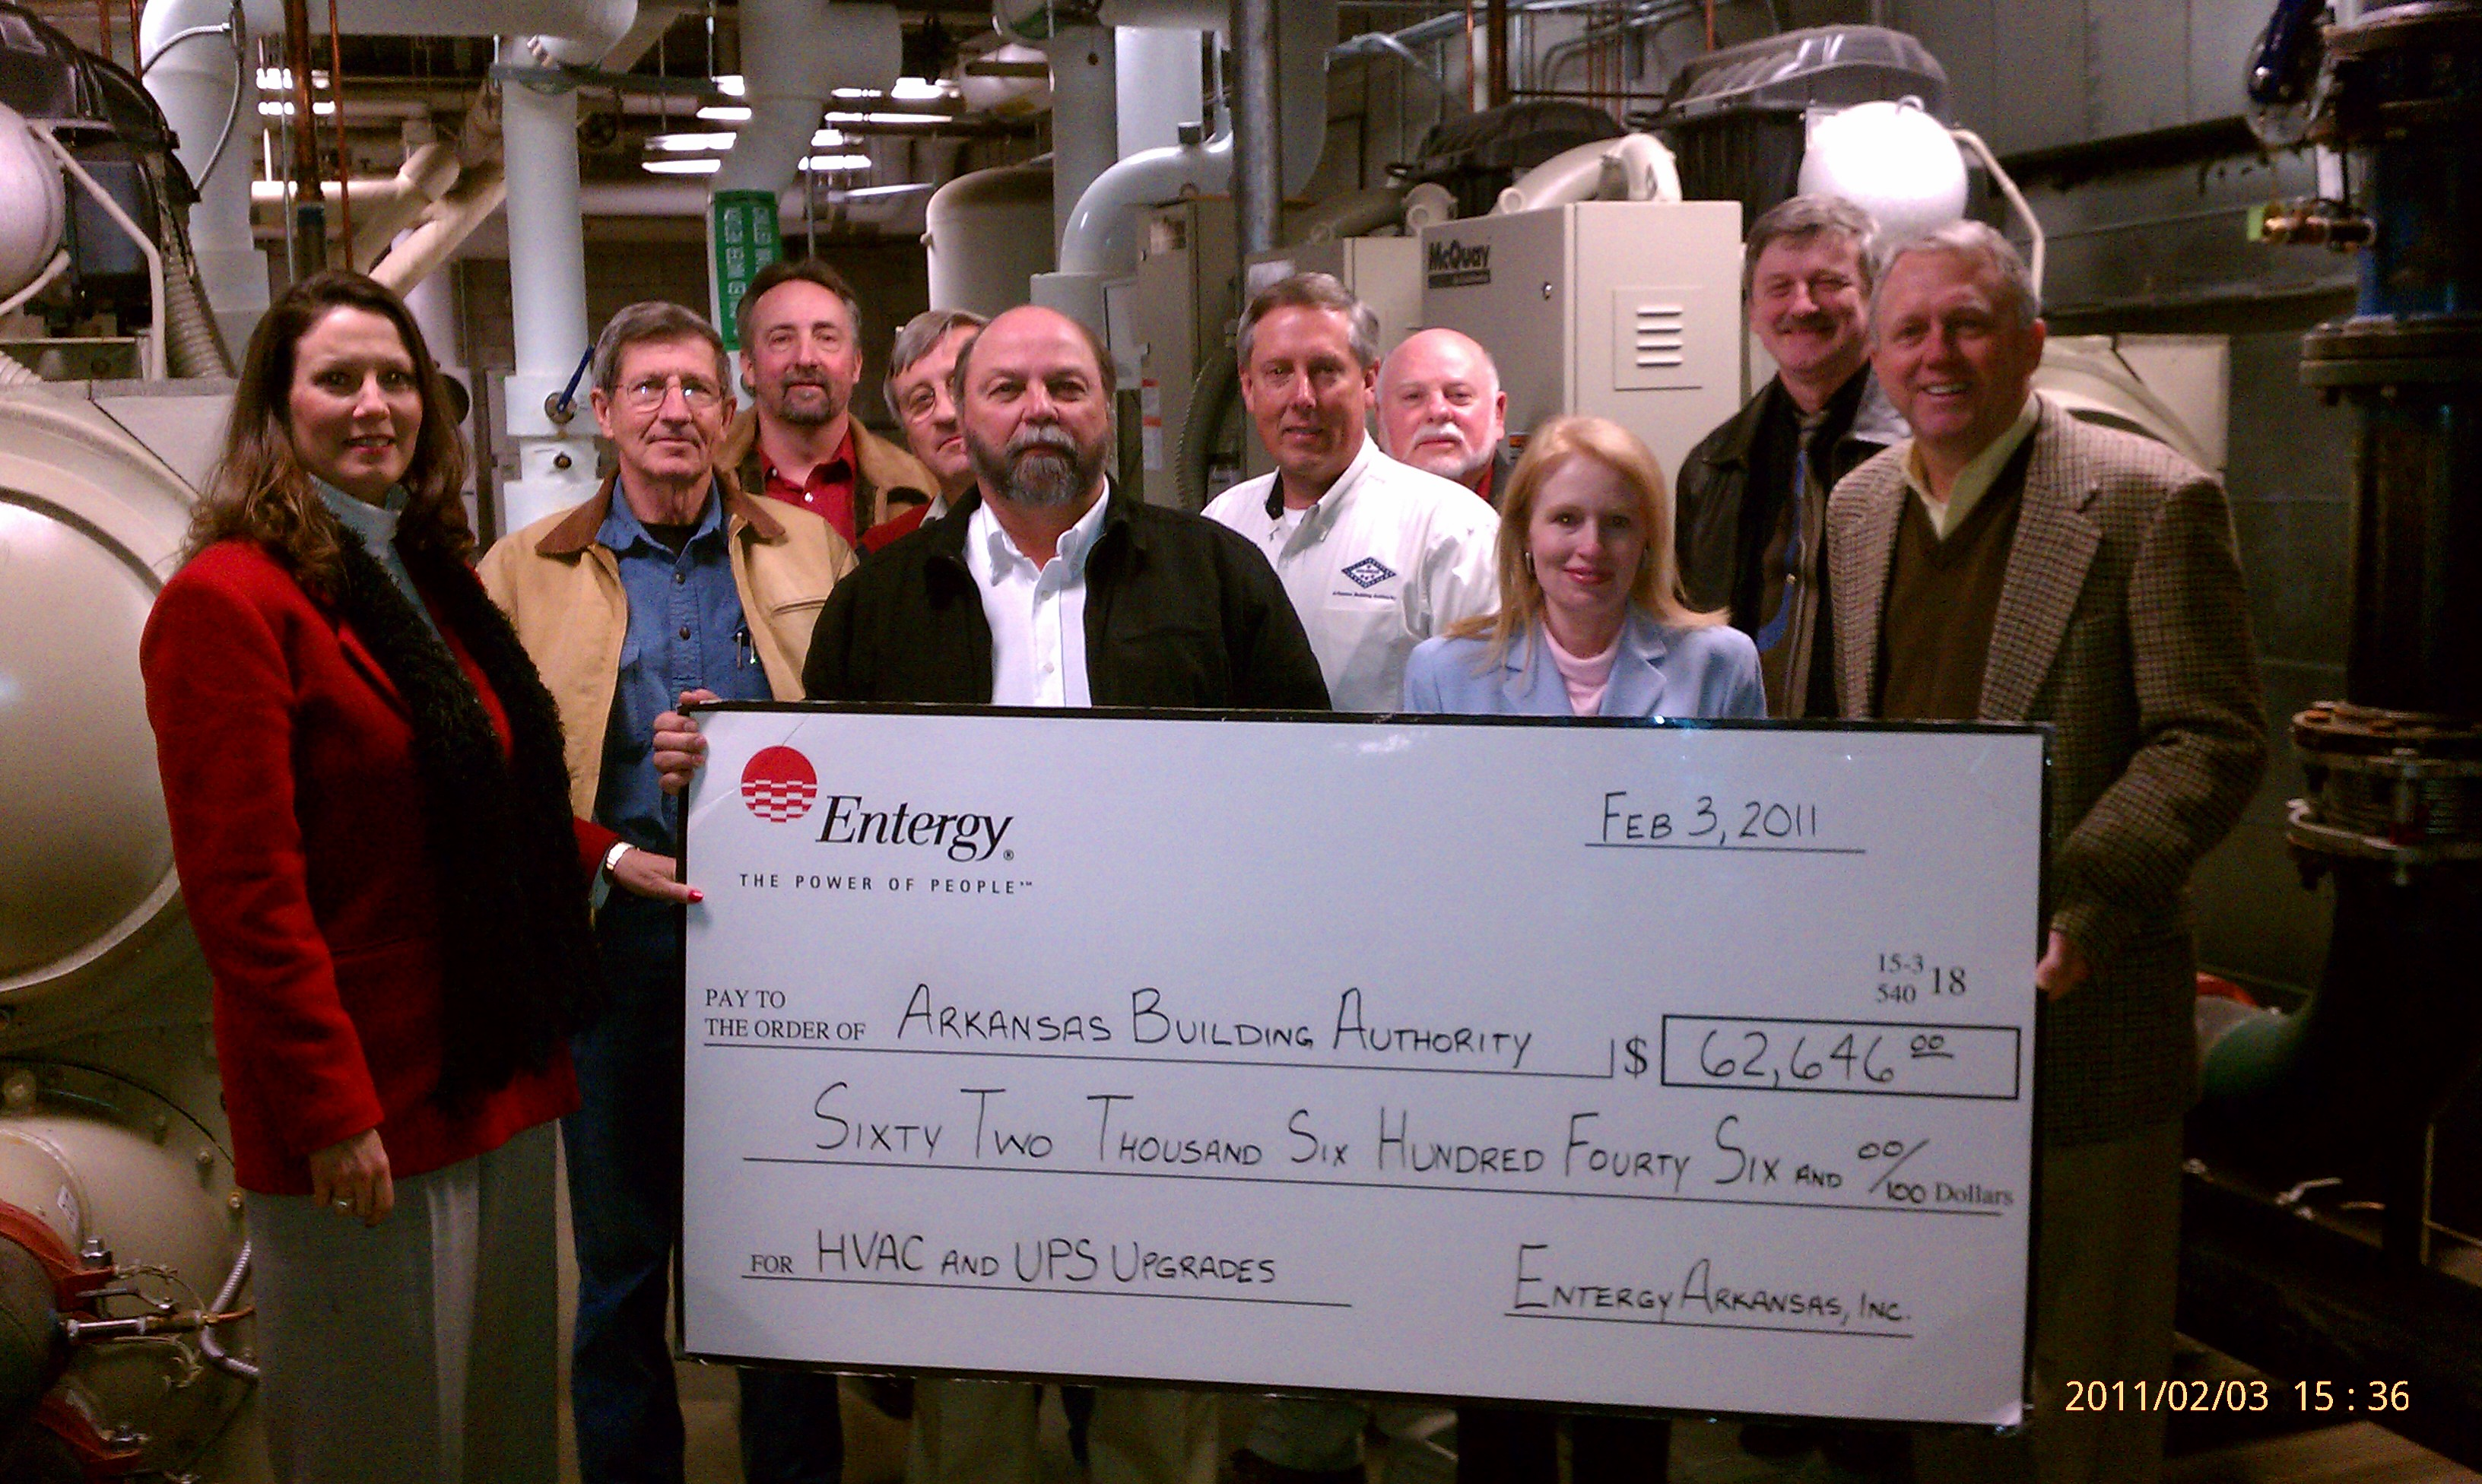 The Arkansas Building Authority (ABA) was awarded an incentive check of $62,650 from Entergy Arkansas, Inc.'s no-cost Large Commercial and Industrial Solutions Program.